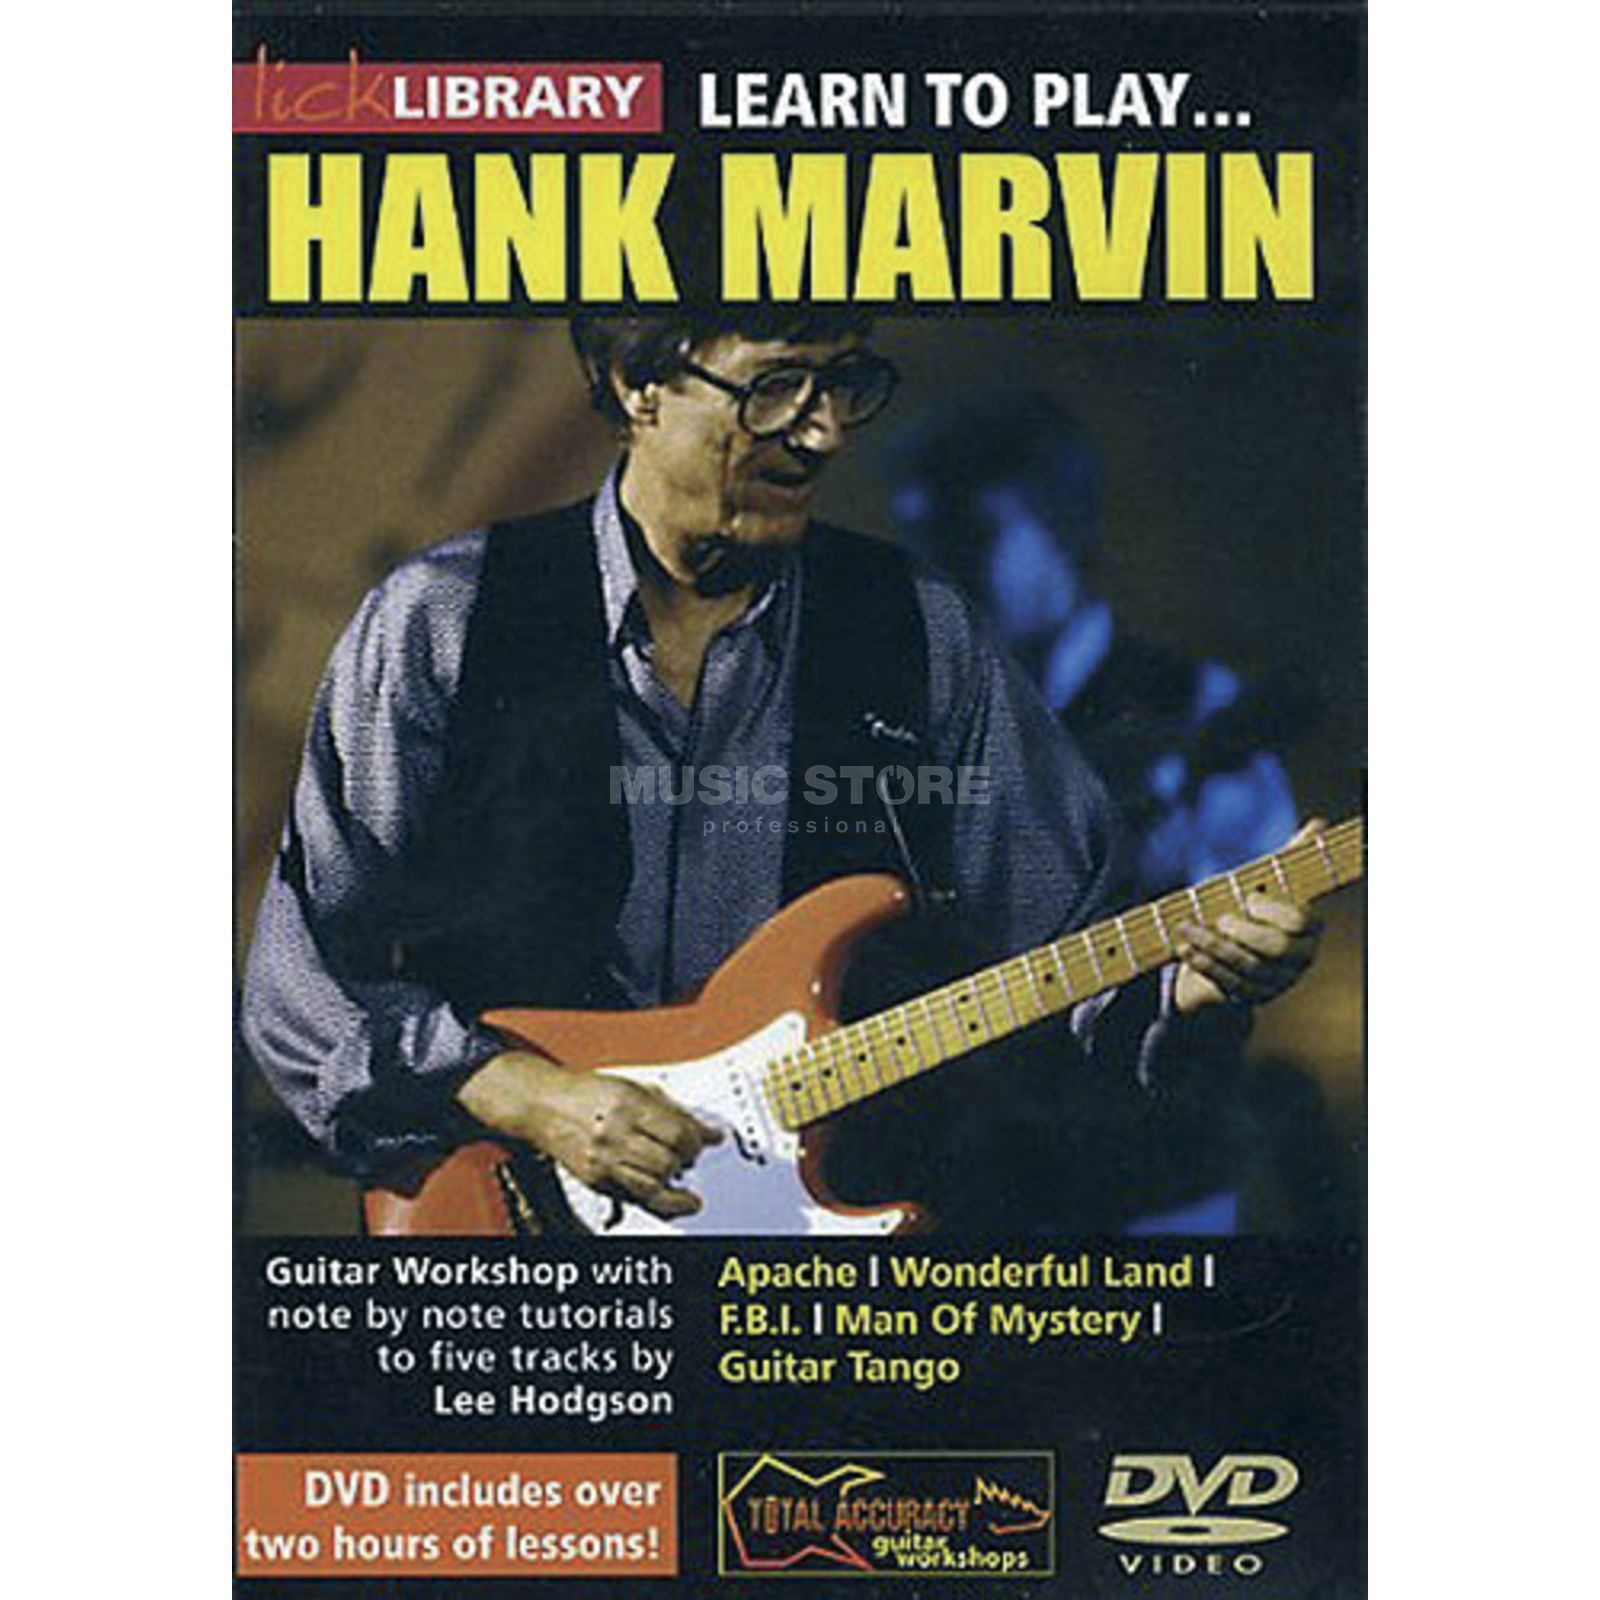 Roadrock International Lick Library: Learn To Play Hank Marvin DVD Produktbild